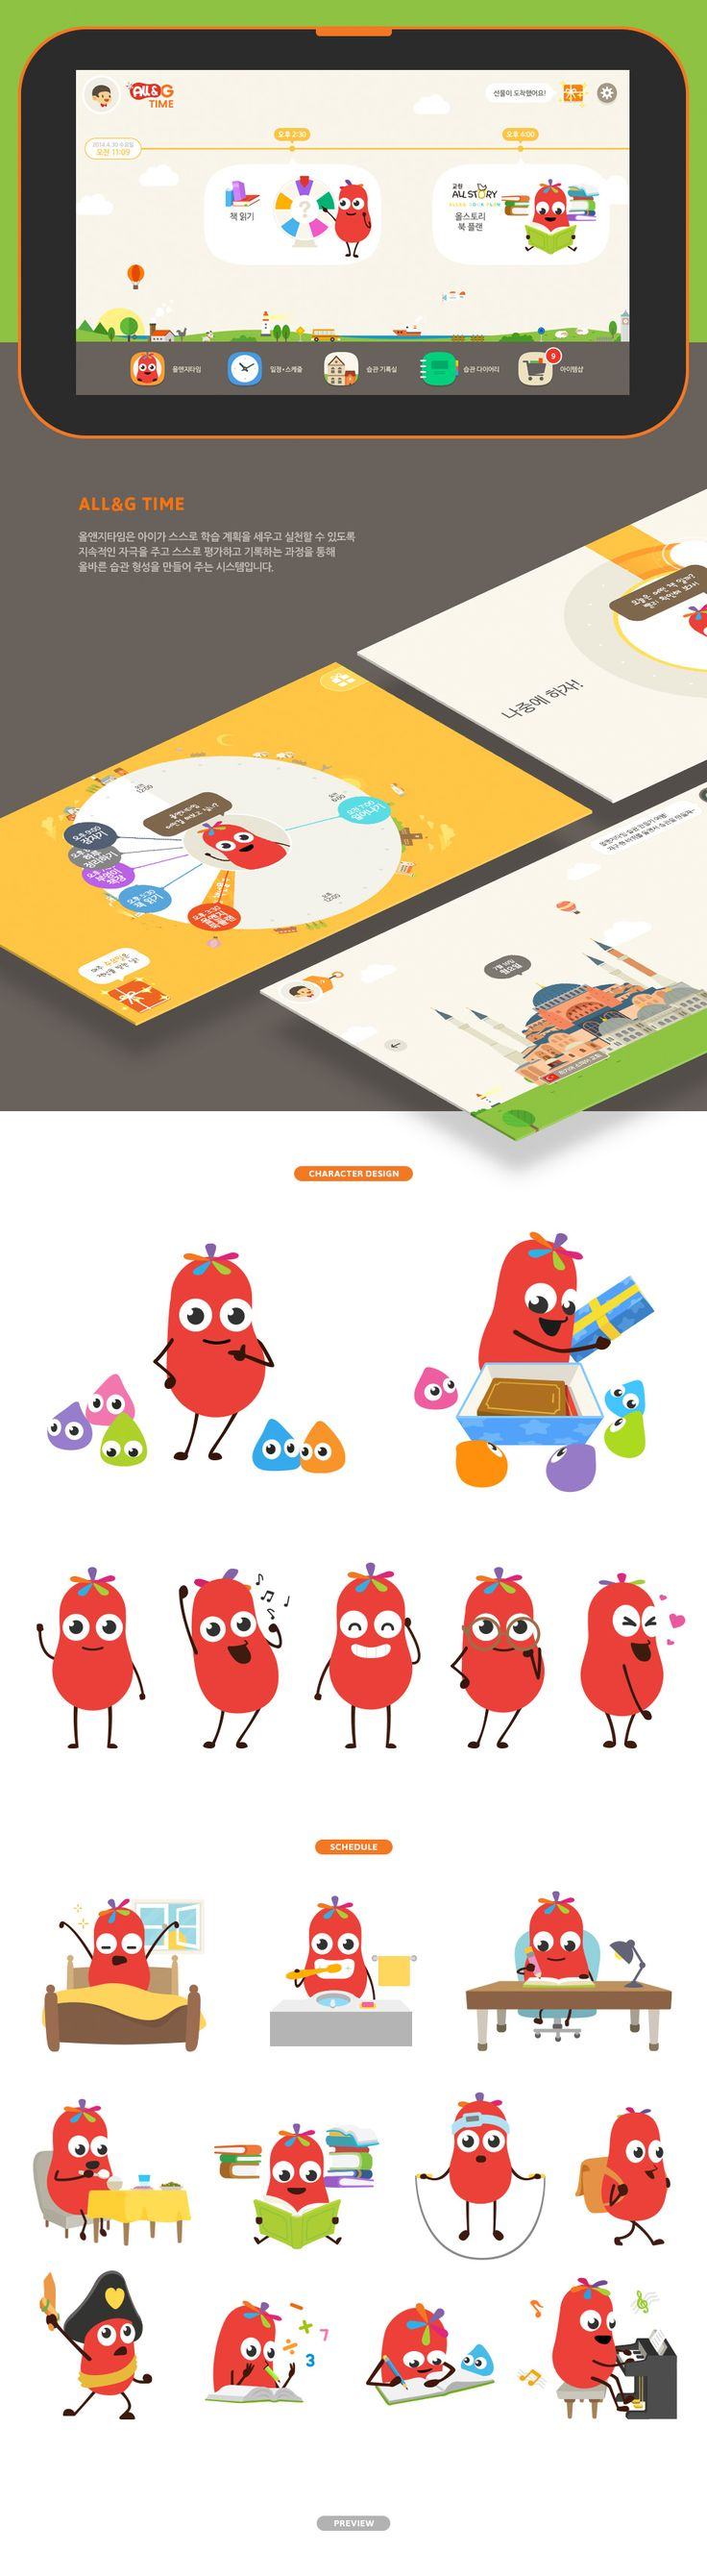 This appears to be an app designed to appeal to young children. The app looks to have utilized a bean-like character that appears throughout the interface. The layout however seems to to be a little too complex for preschool aged children.